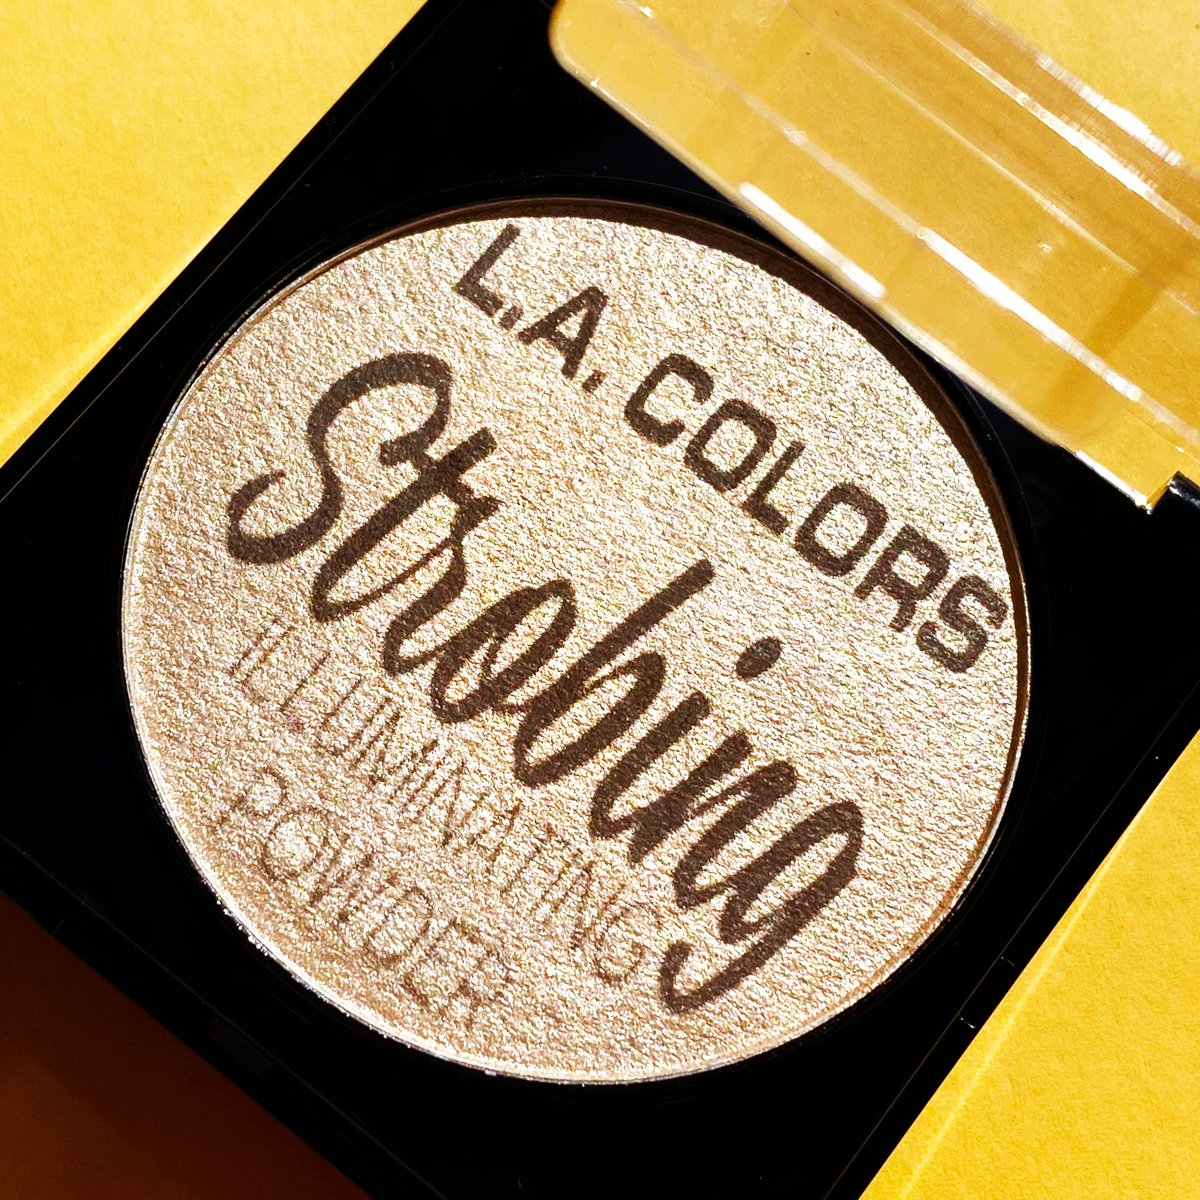 Our Strobing Illuminating Powder has your back for the perfect Golden Hour selfie.  . . . #LACOLORSCosmetics #LACOLORS #IMakeup #Affordable #CrueltyFree #AffordableMakeup #ColorfulMakeup #Pigmented #MakeupGoals #goldenhour #highlighter #glowgoalspic.twitter.com/jhMhim8kdF